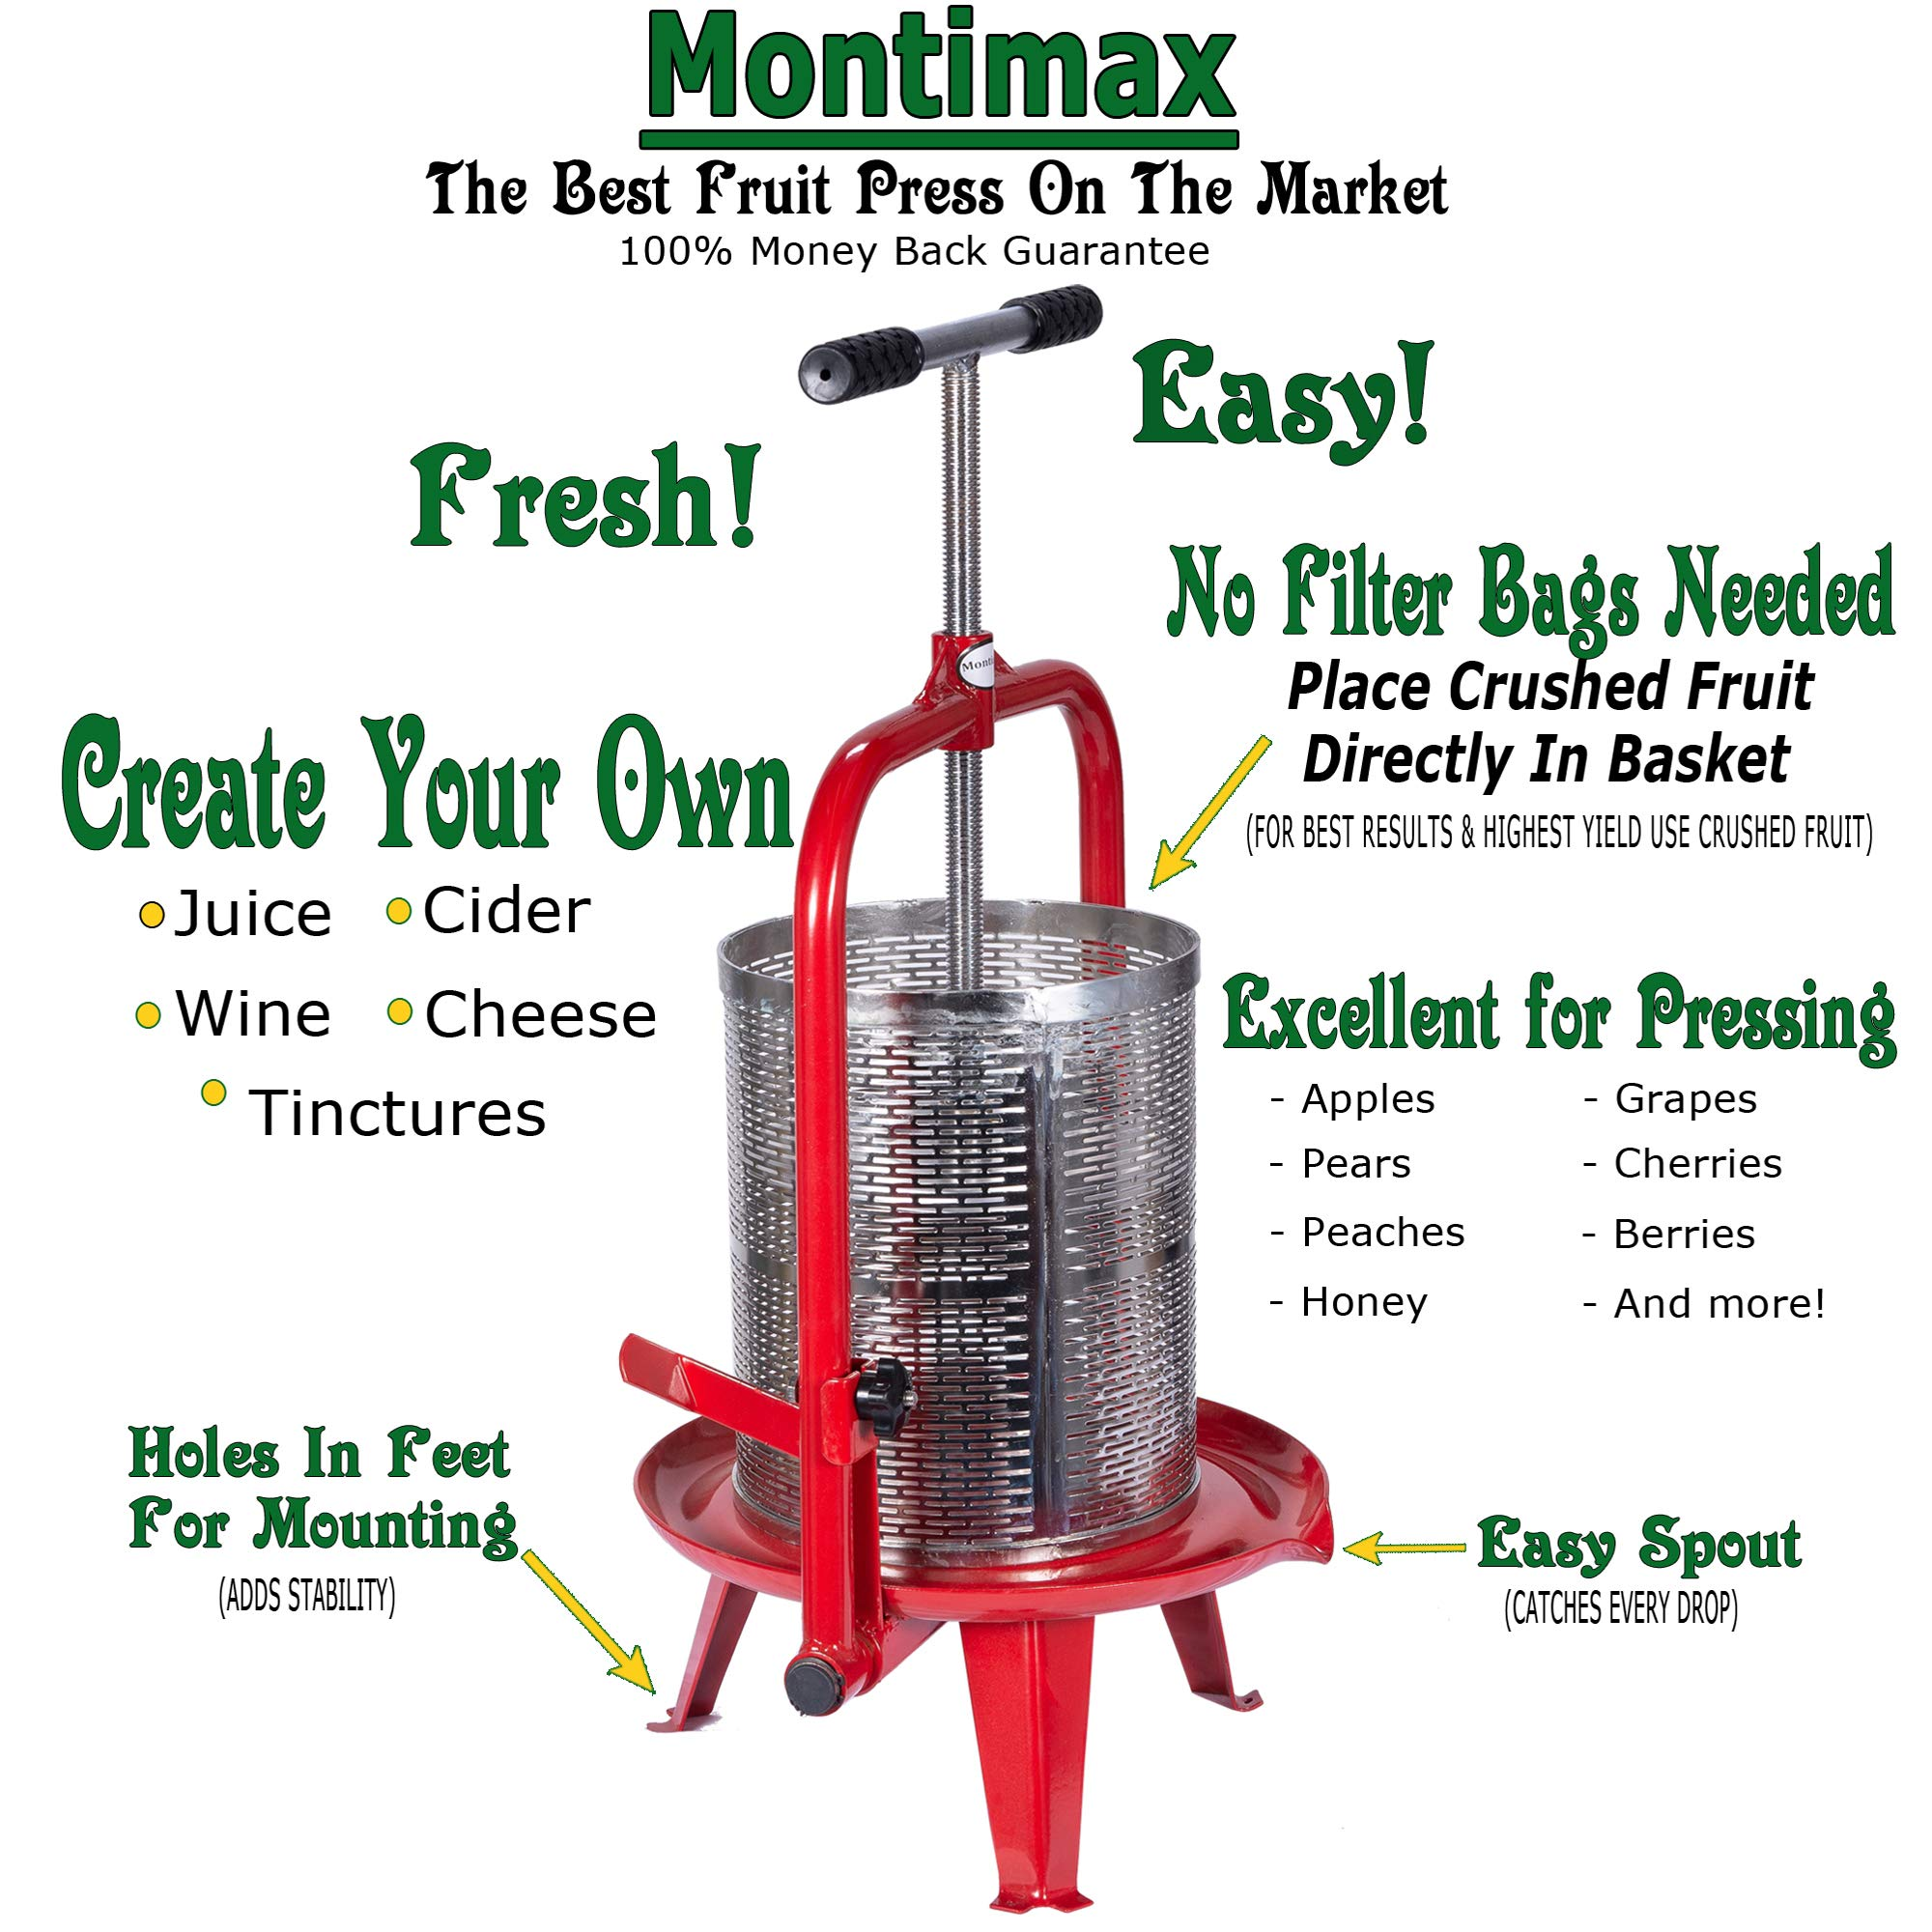 14 Liter (3.75 Gallon) Fruit Press - New Larger Stainless Pressing Plate - Cider, Wine, Grape, Apple Press, For Apple Cider, Wine and Juice Making, Stainless Steel, Choose Size by Montimax by Montimax By Green Max Products (Image #2)